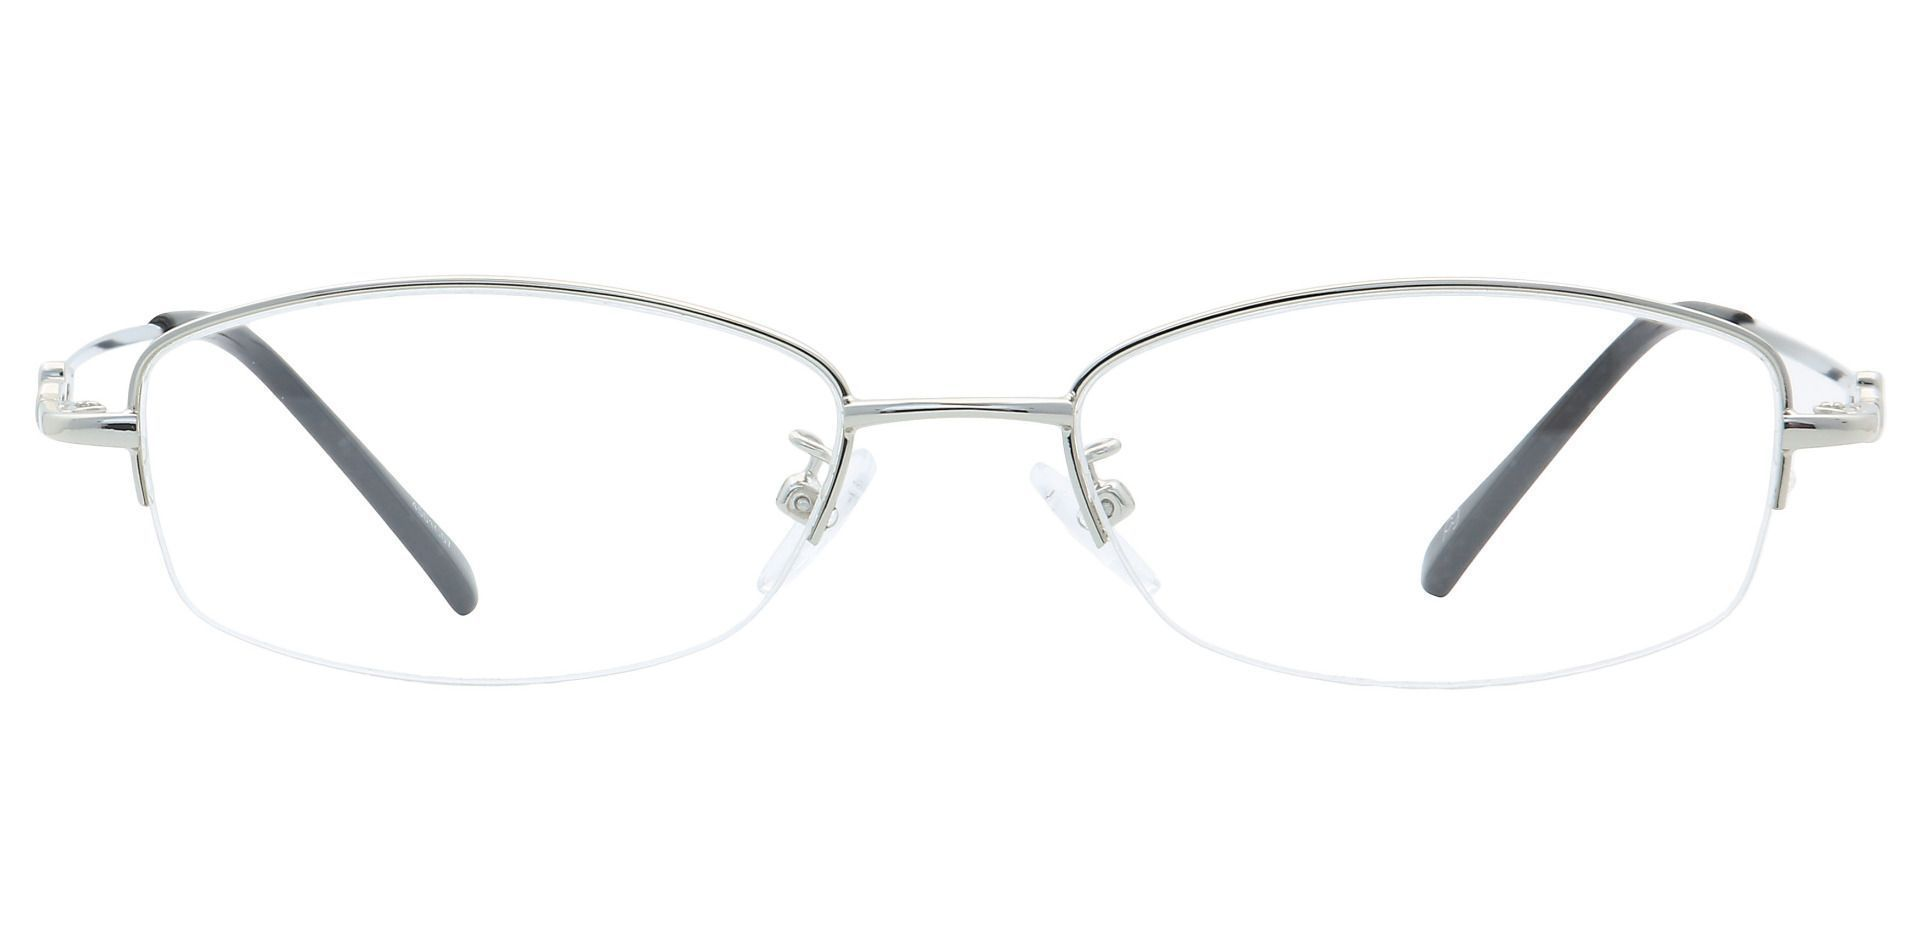 Meadowsweet Oval Eyeglasses Frame - Clear